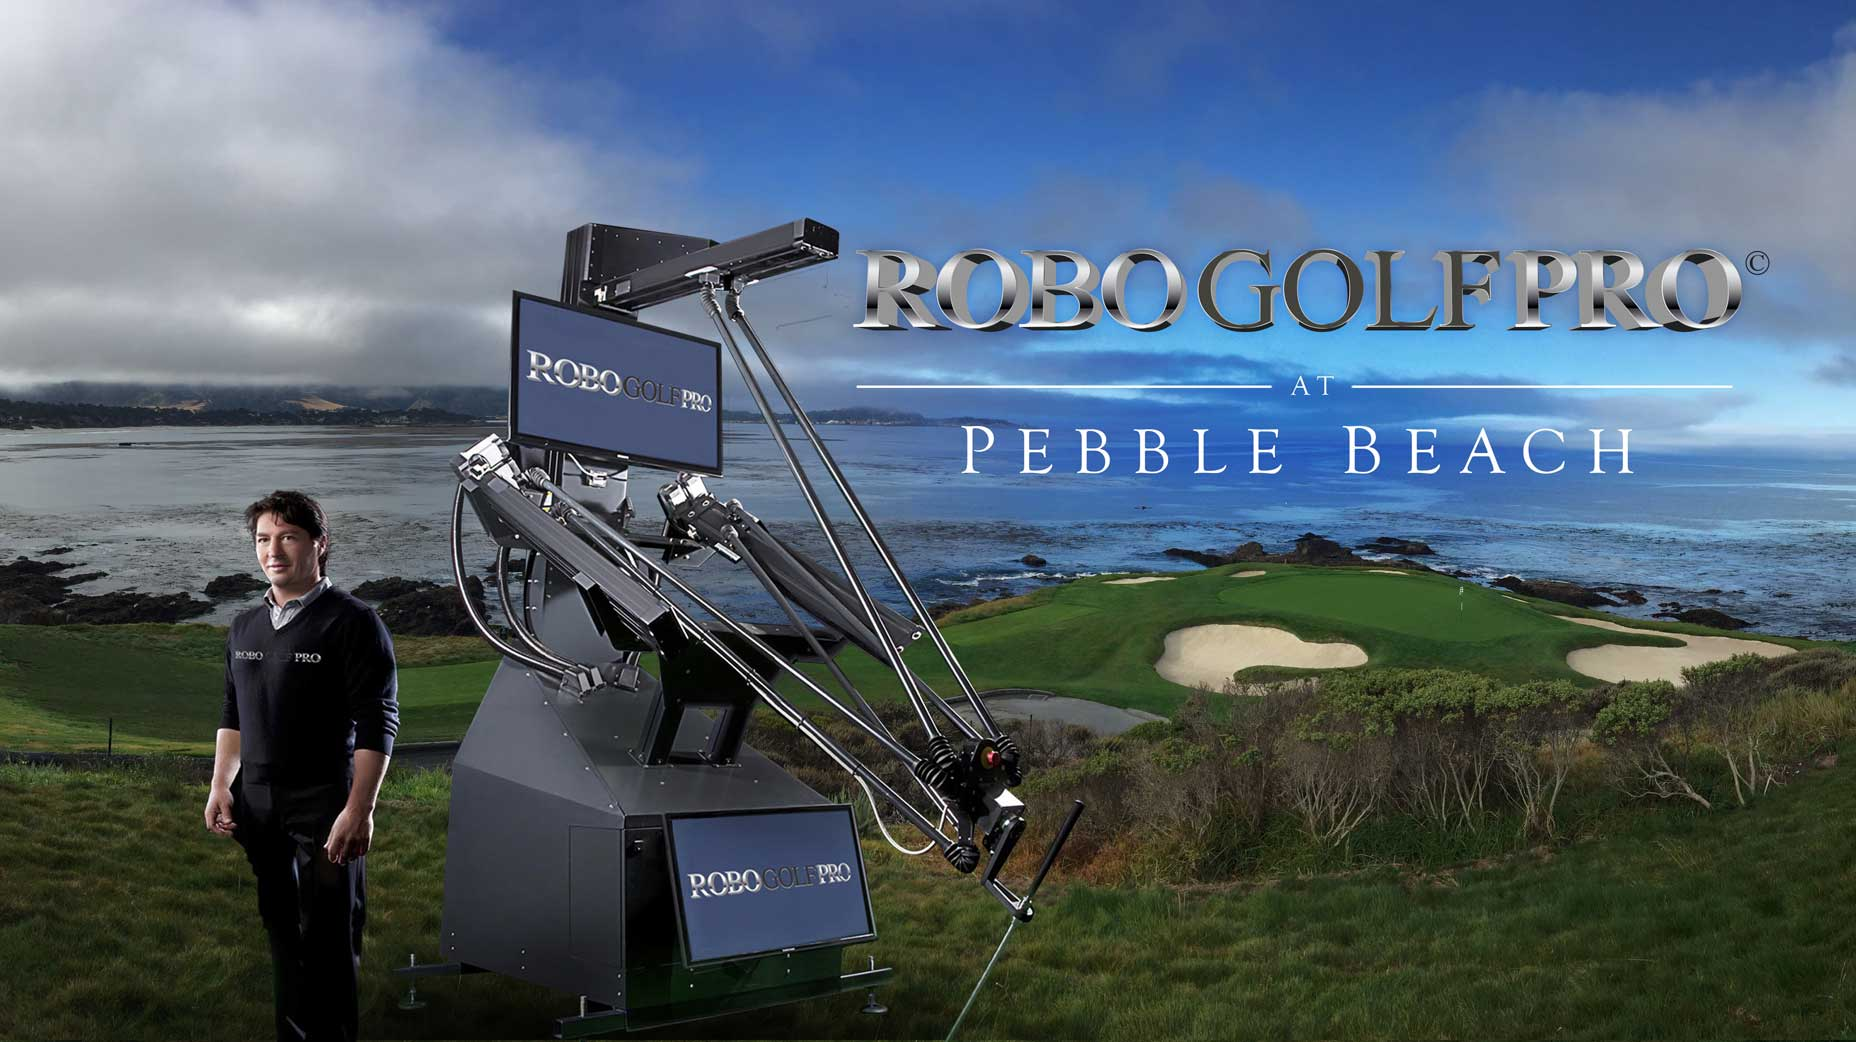 By donating to this cause, you could win a chance to play Pebble Beach